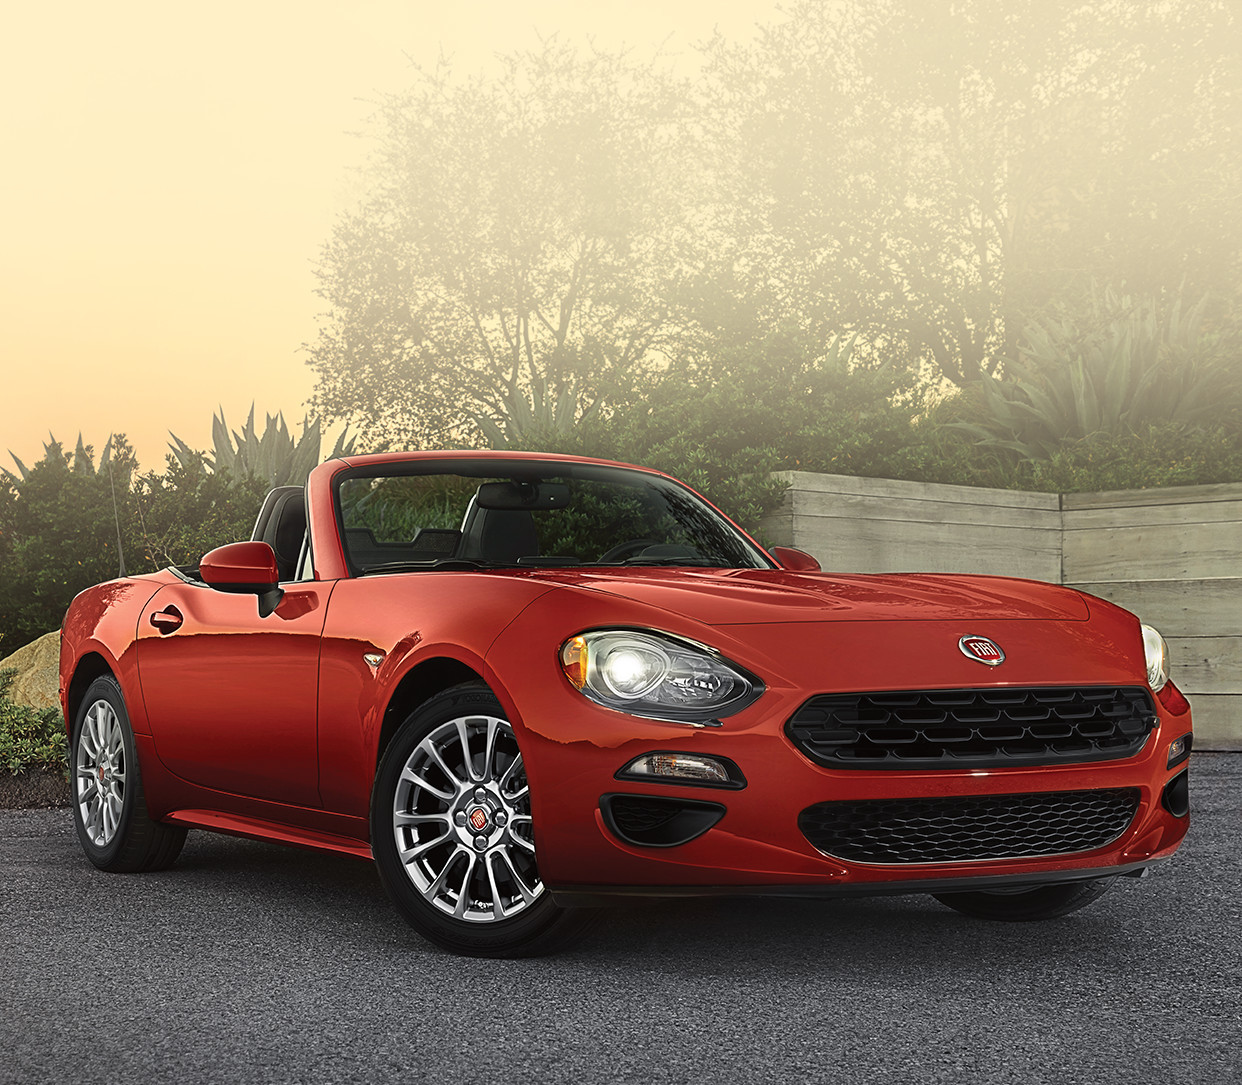 2018 Fiat 124 Spider Roadster side view red